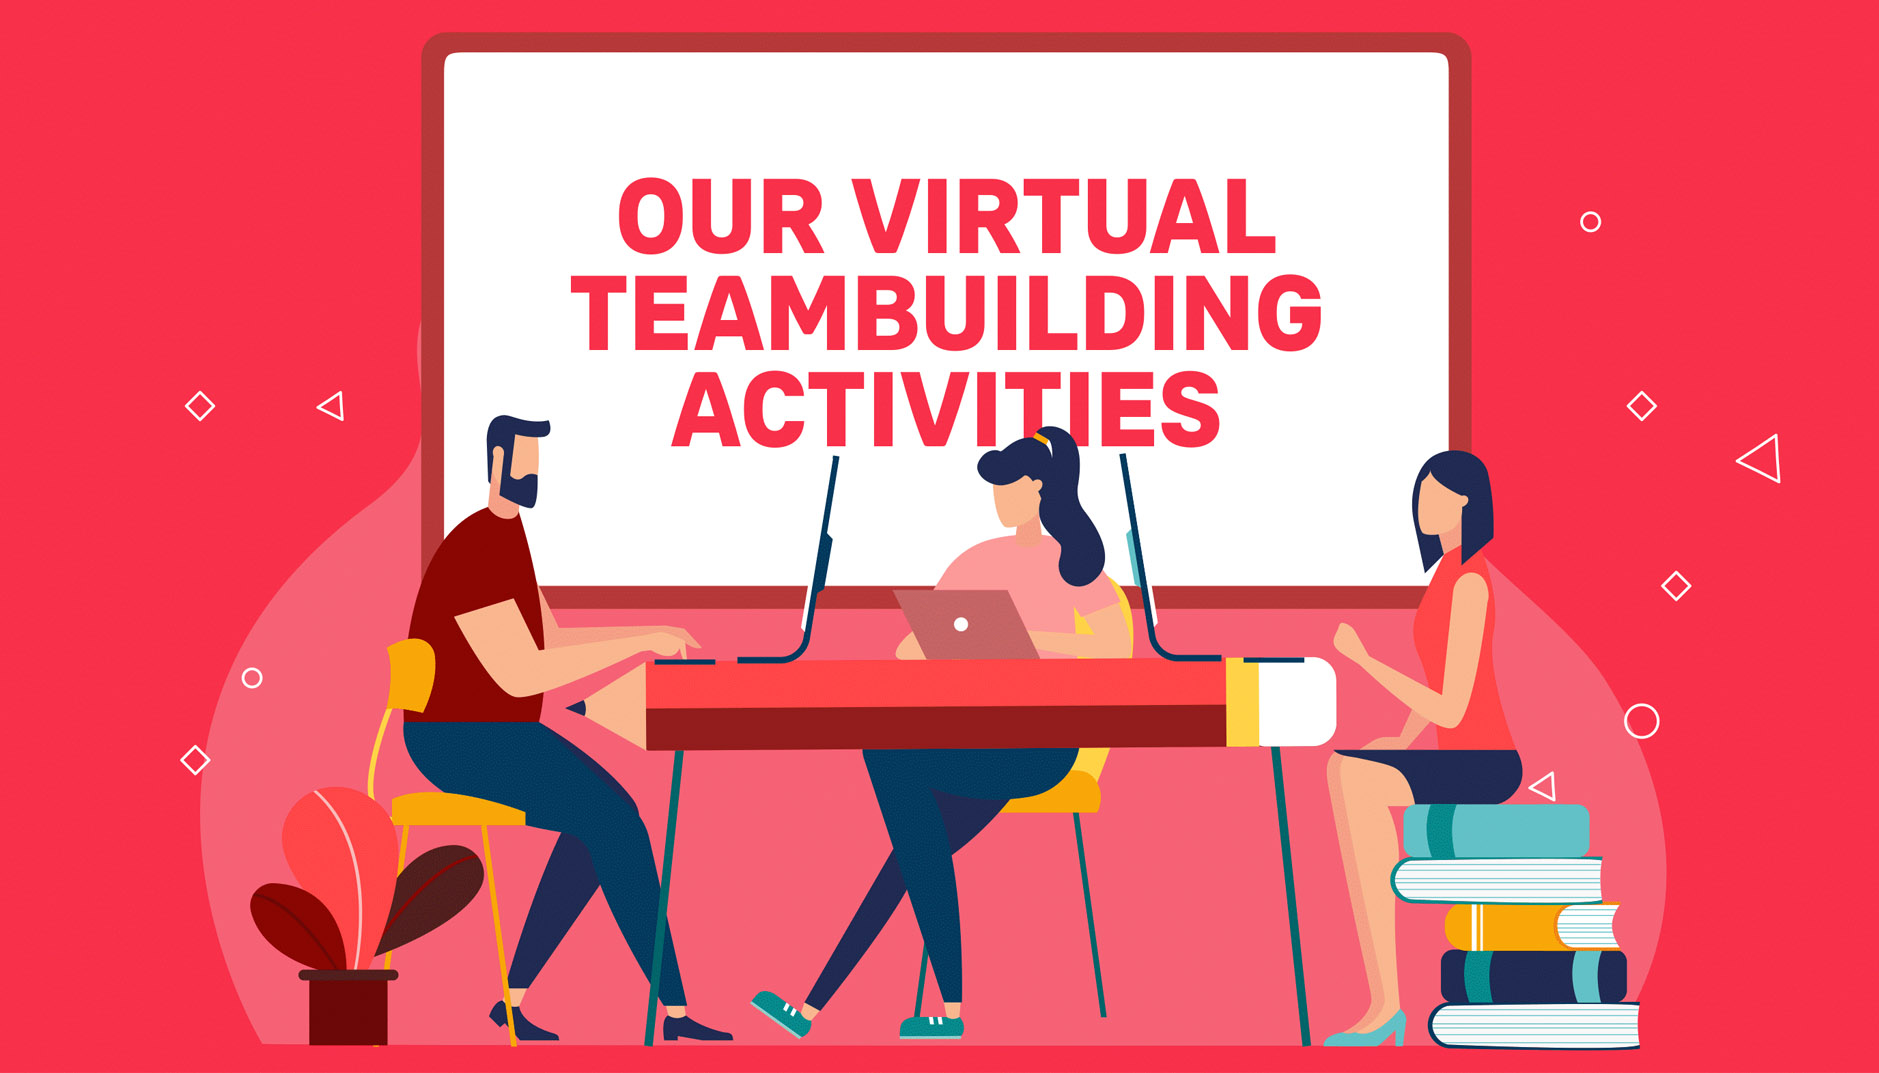 Our virtual teambuilding activities